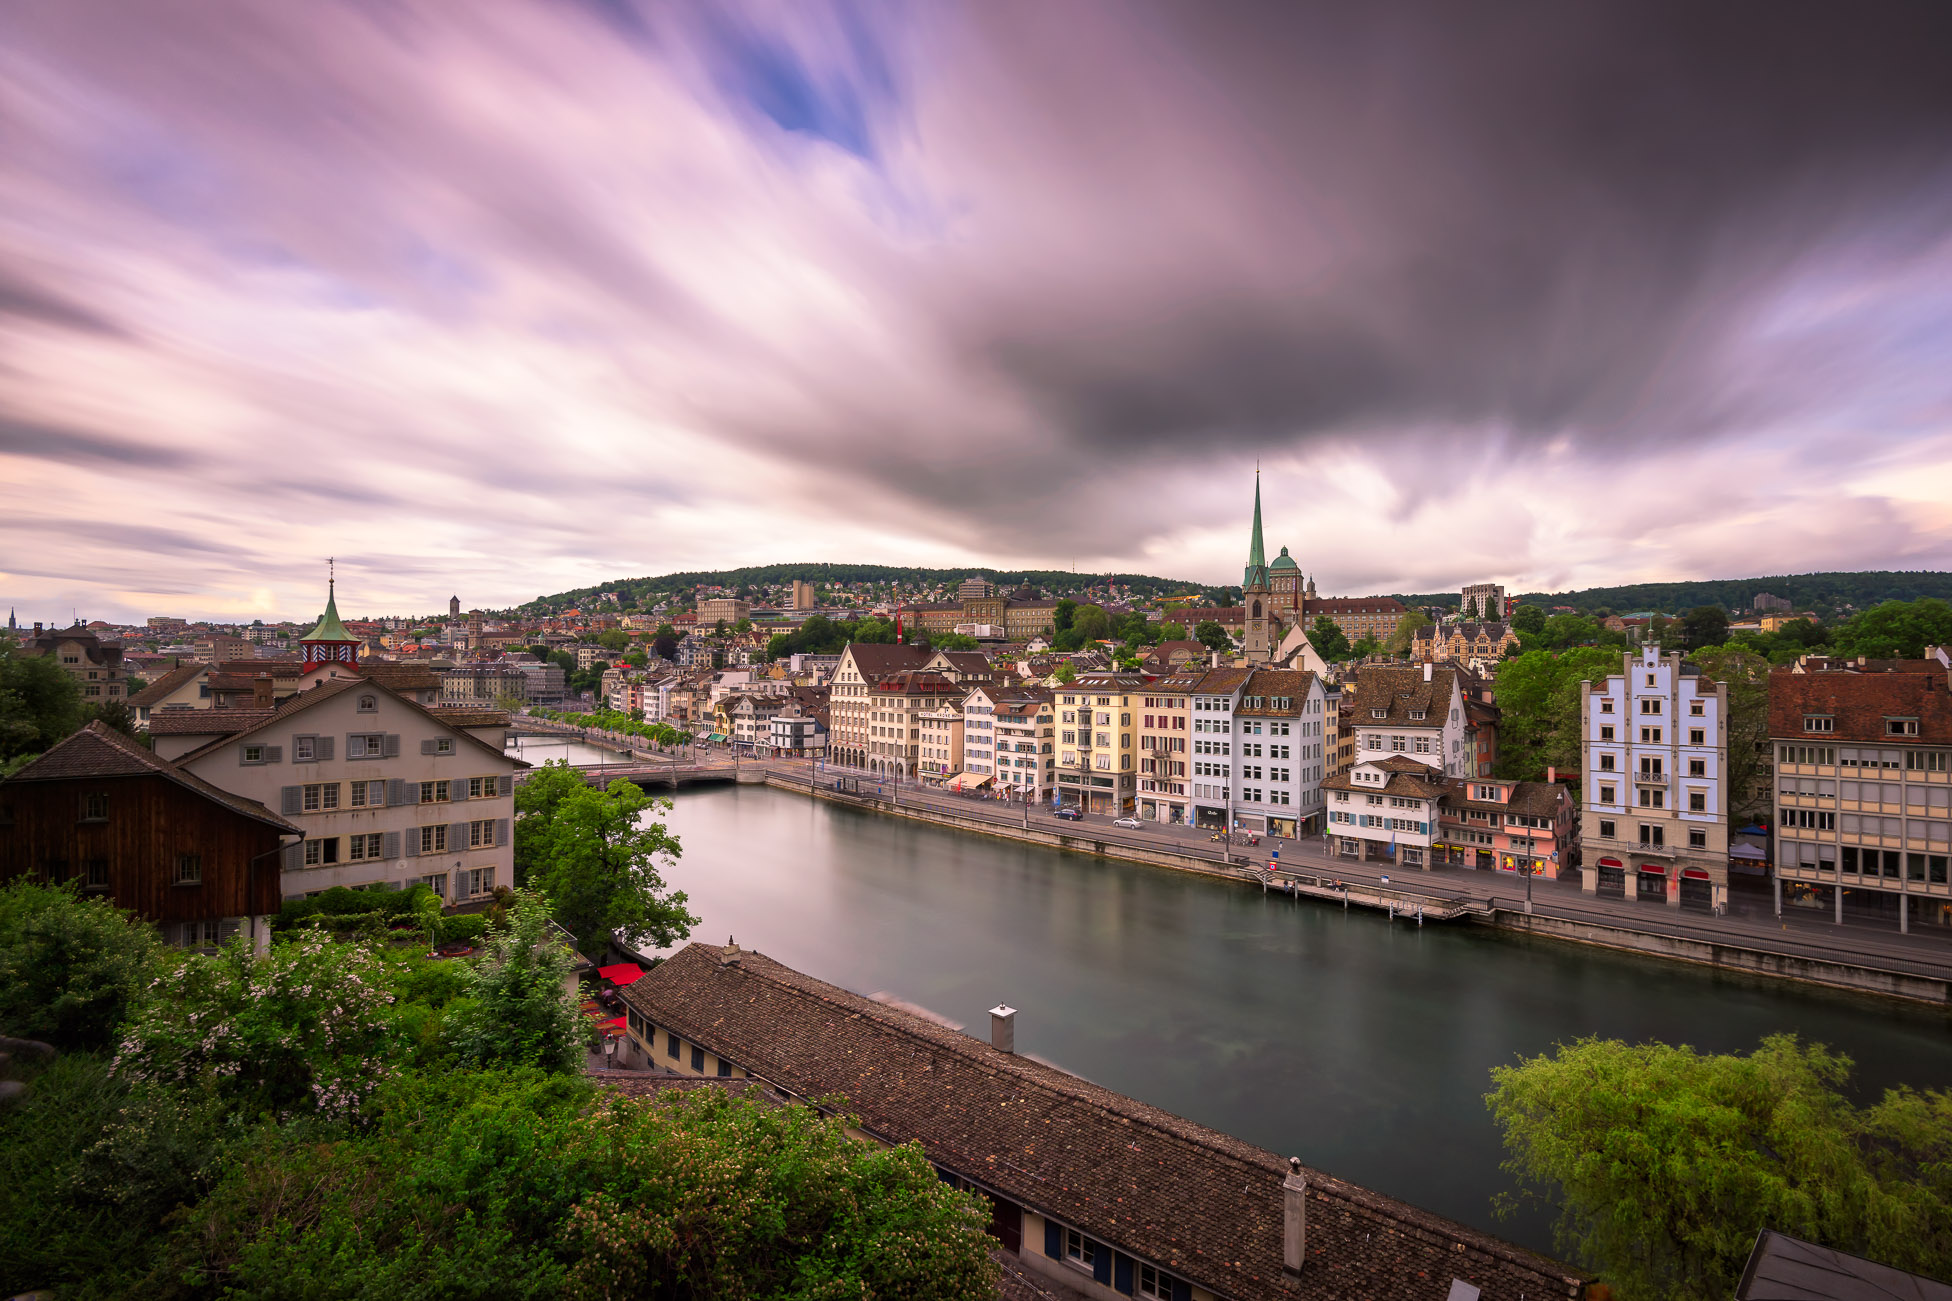 View of Zurich and Limmat River from Lindenhof Hill, Zurich, Switzerland